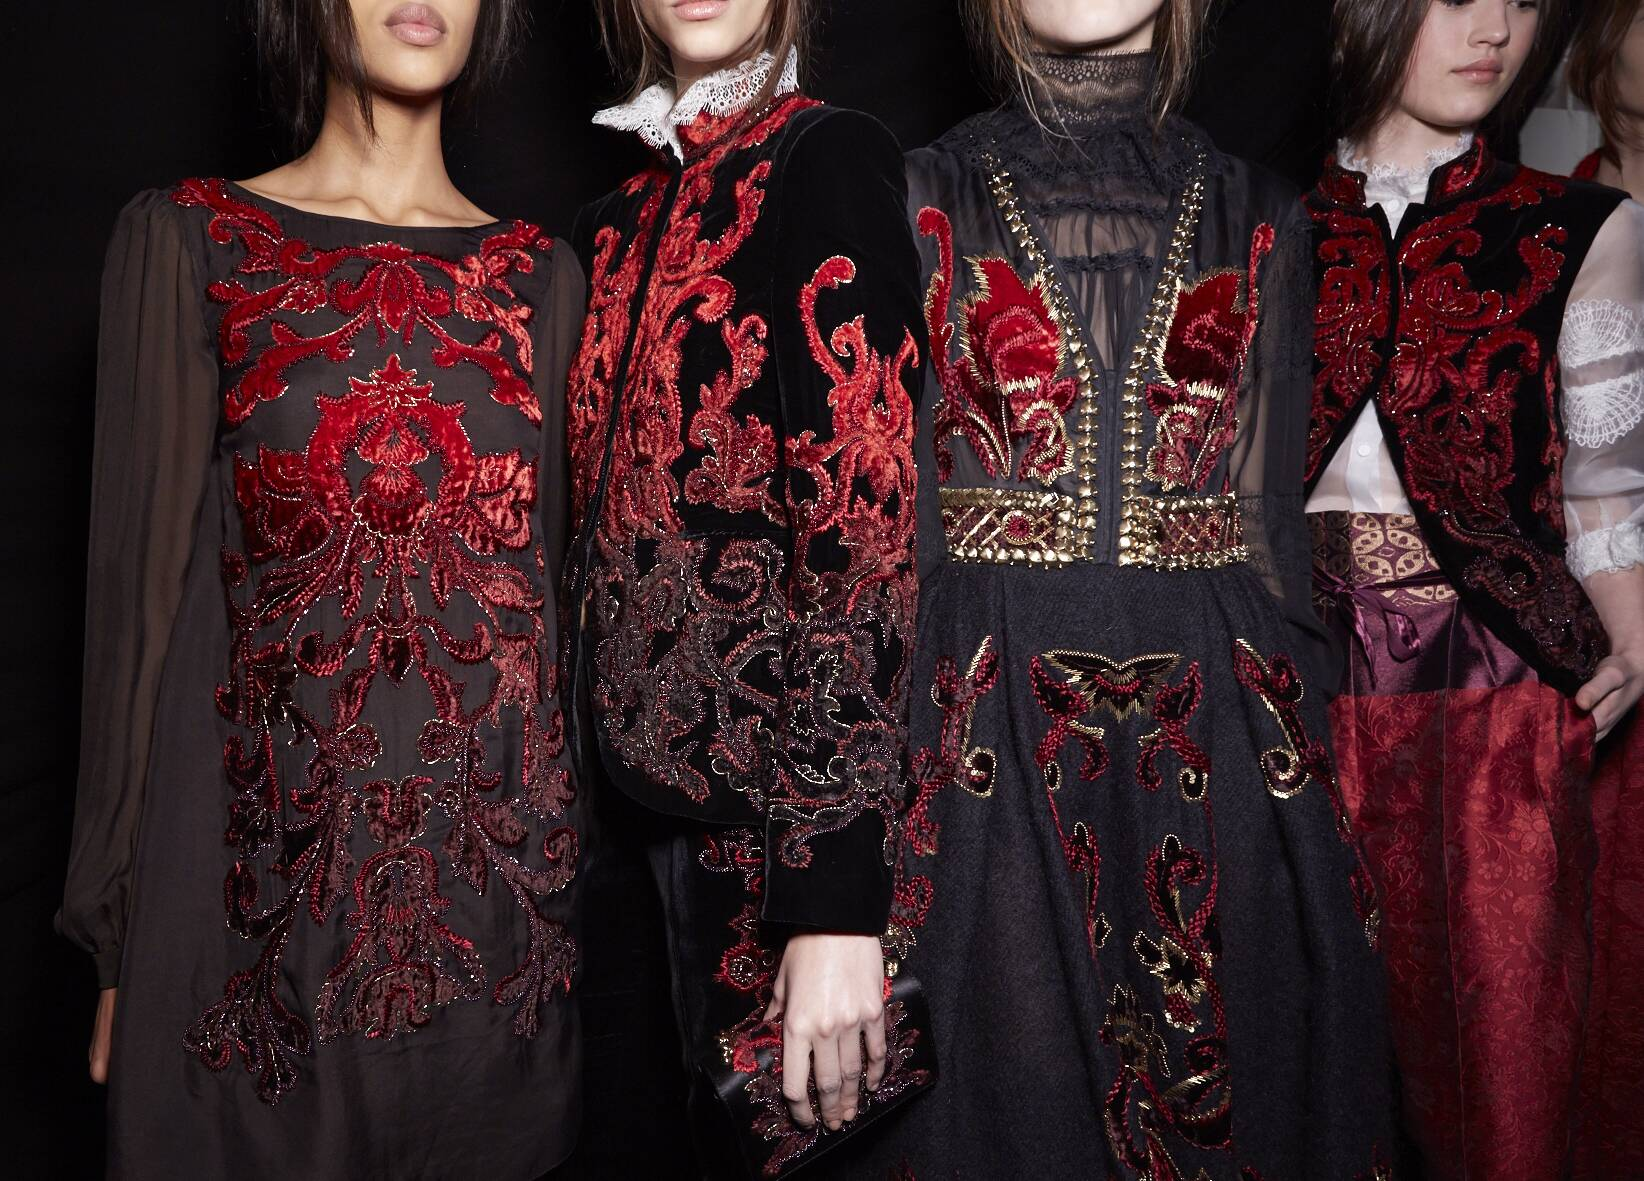 Alberta Ferretti Backstage Fashion Models